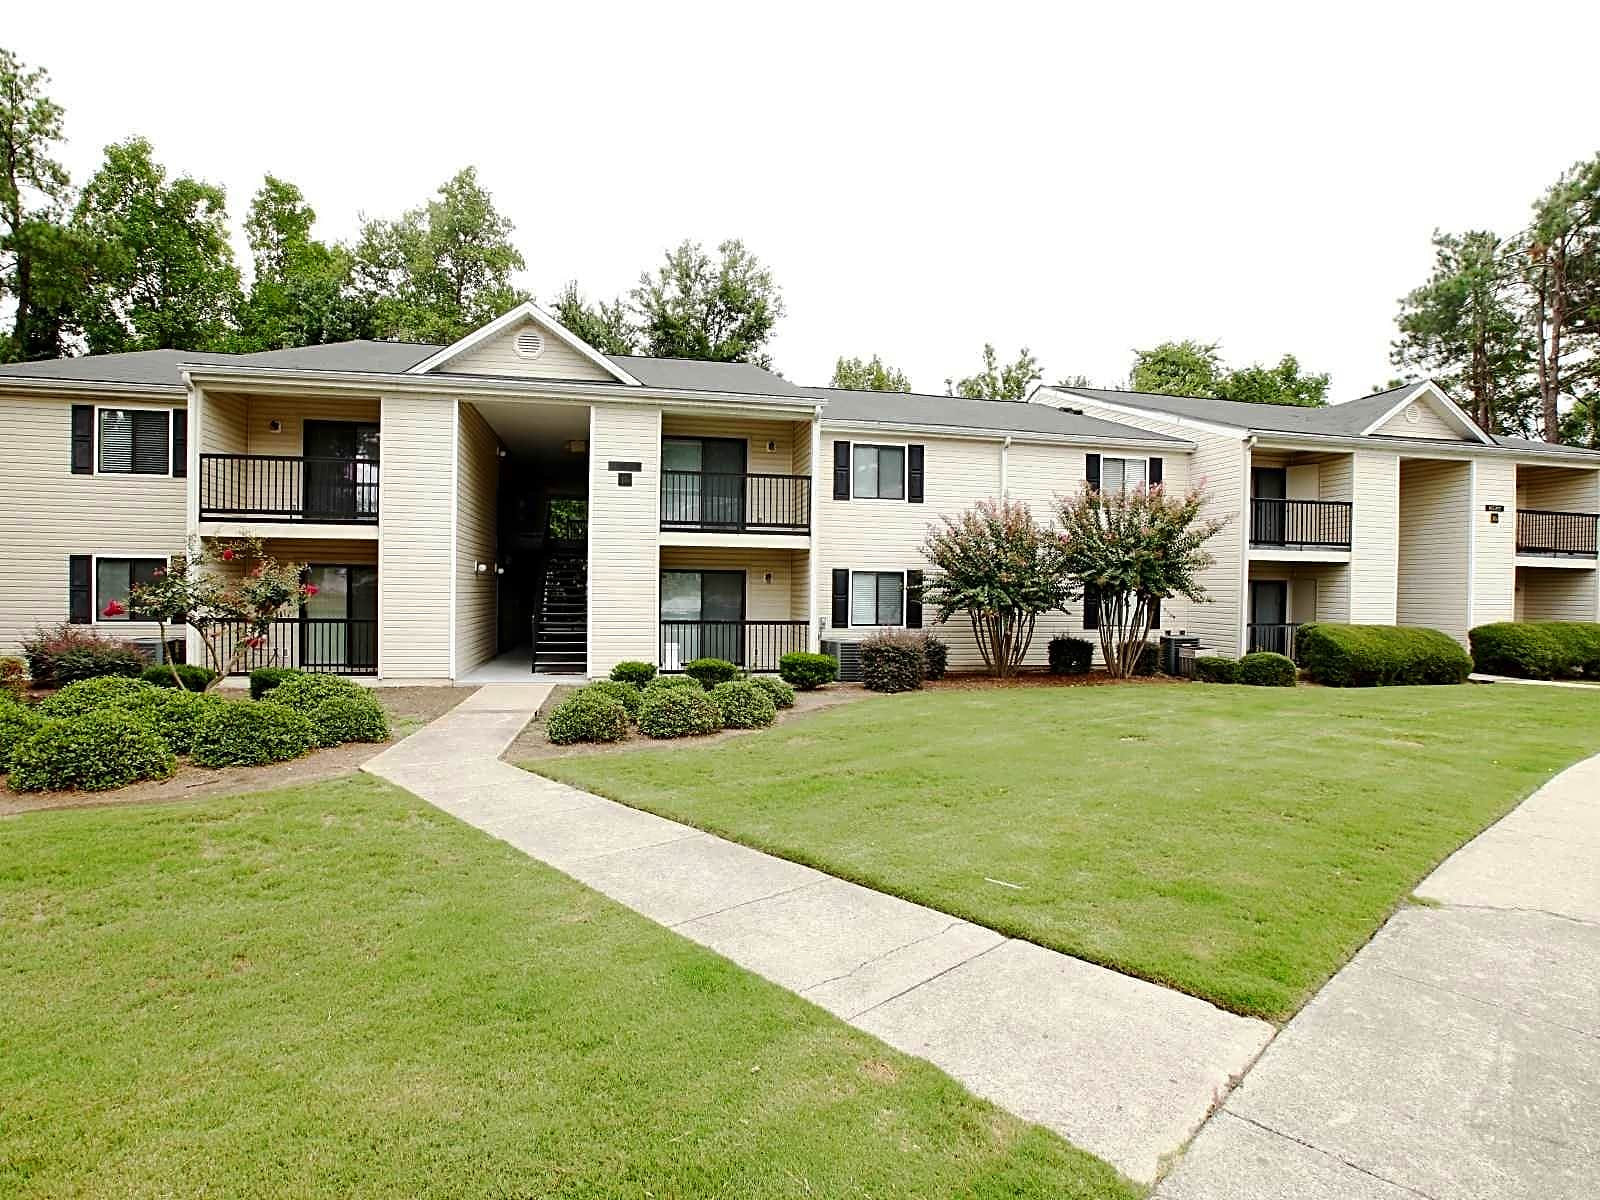 Apartments and houses for rent in west augusta augusta - 3 bedroom apartments in augusta ga ...